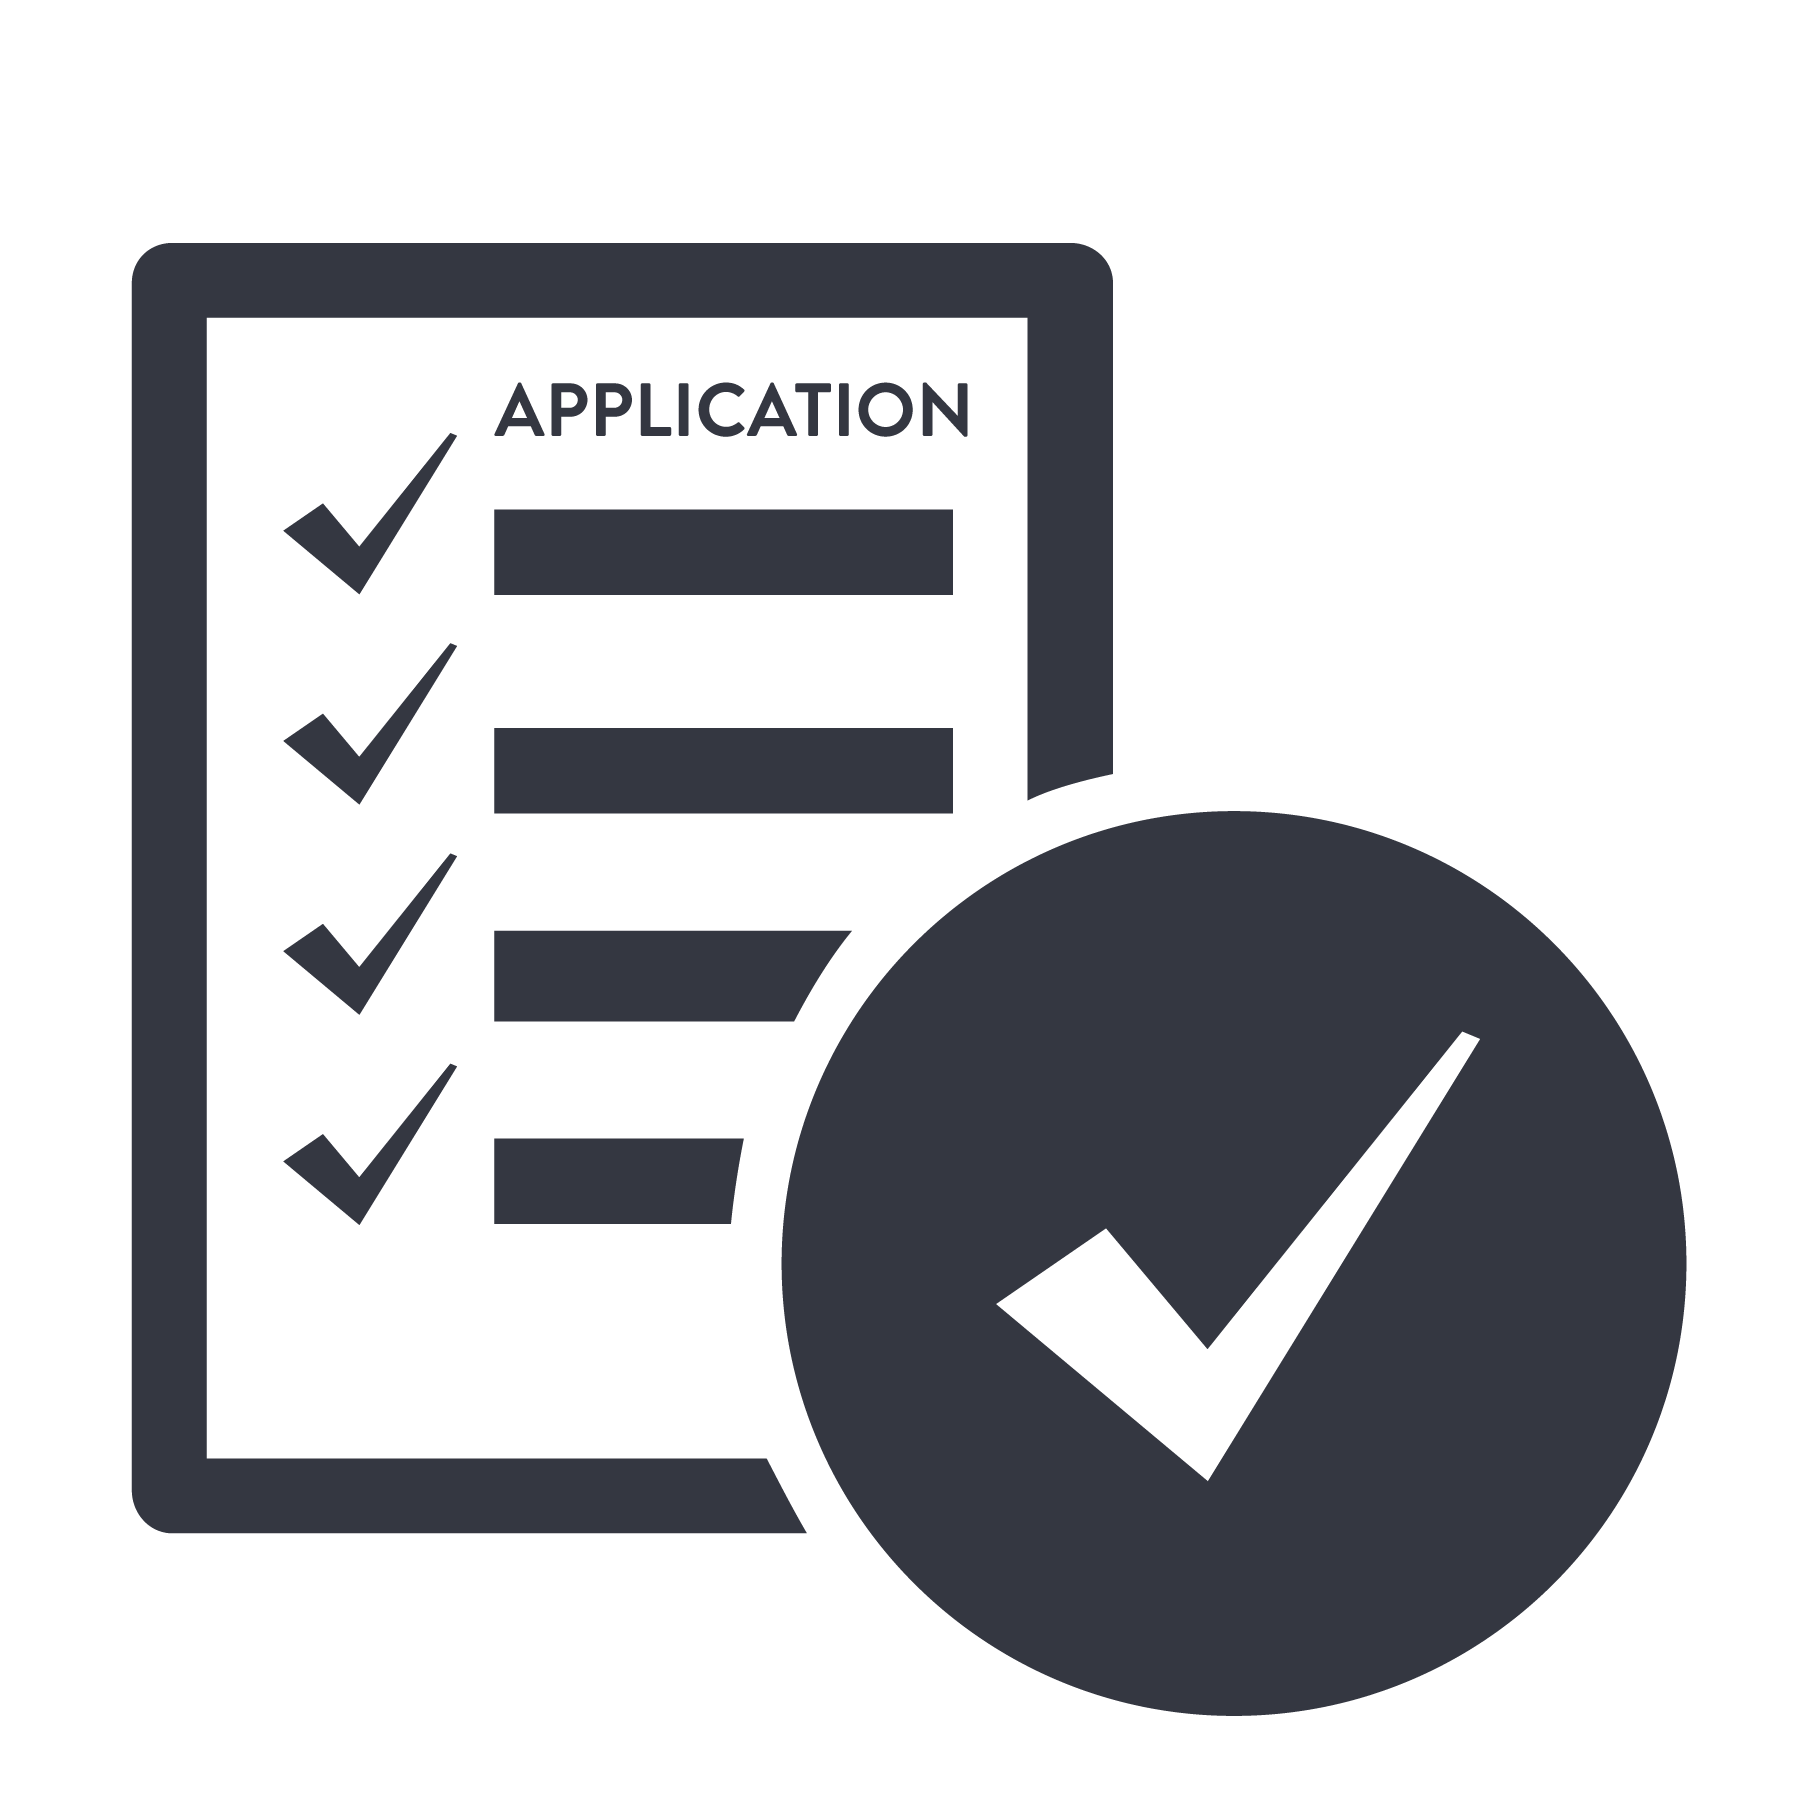 Application steps icon